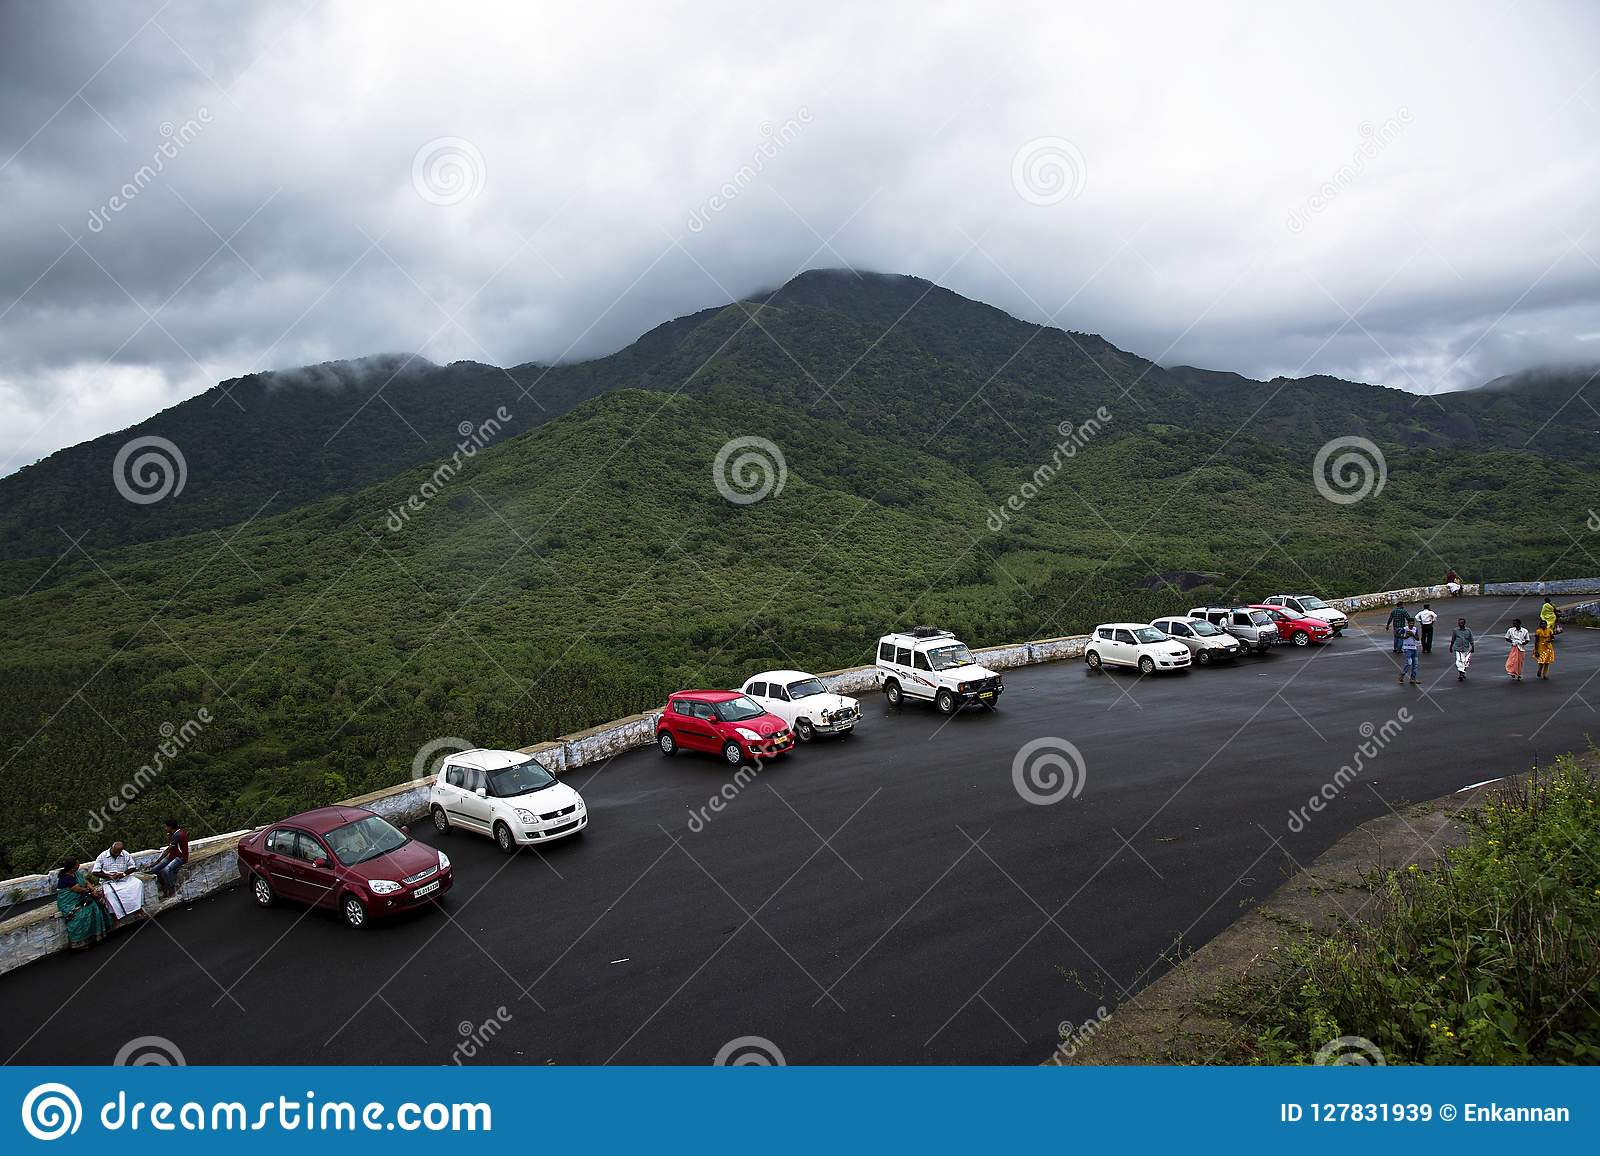 On a rainy day cars are parked at a hill stationin a row